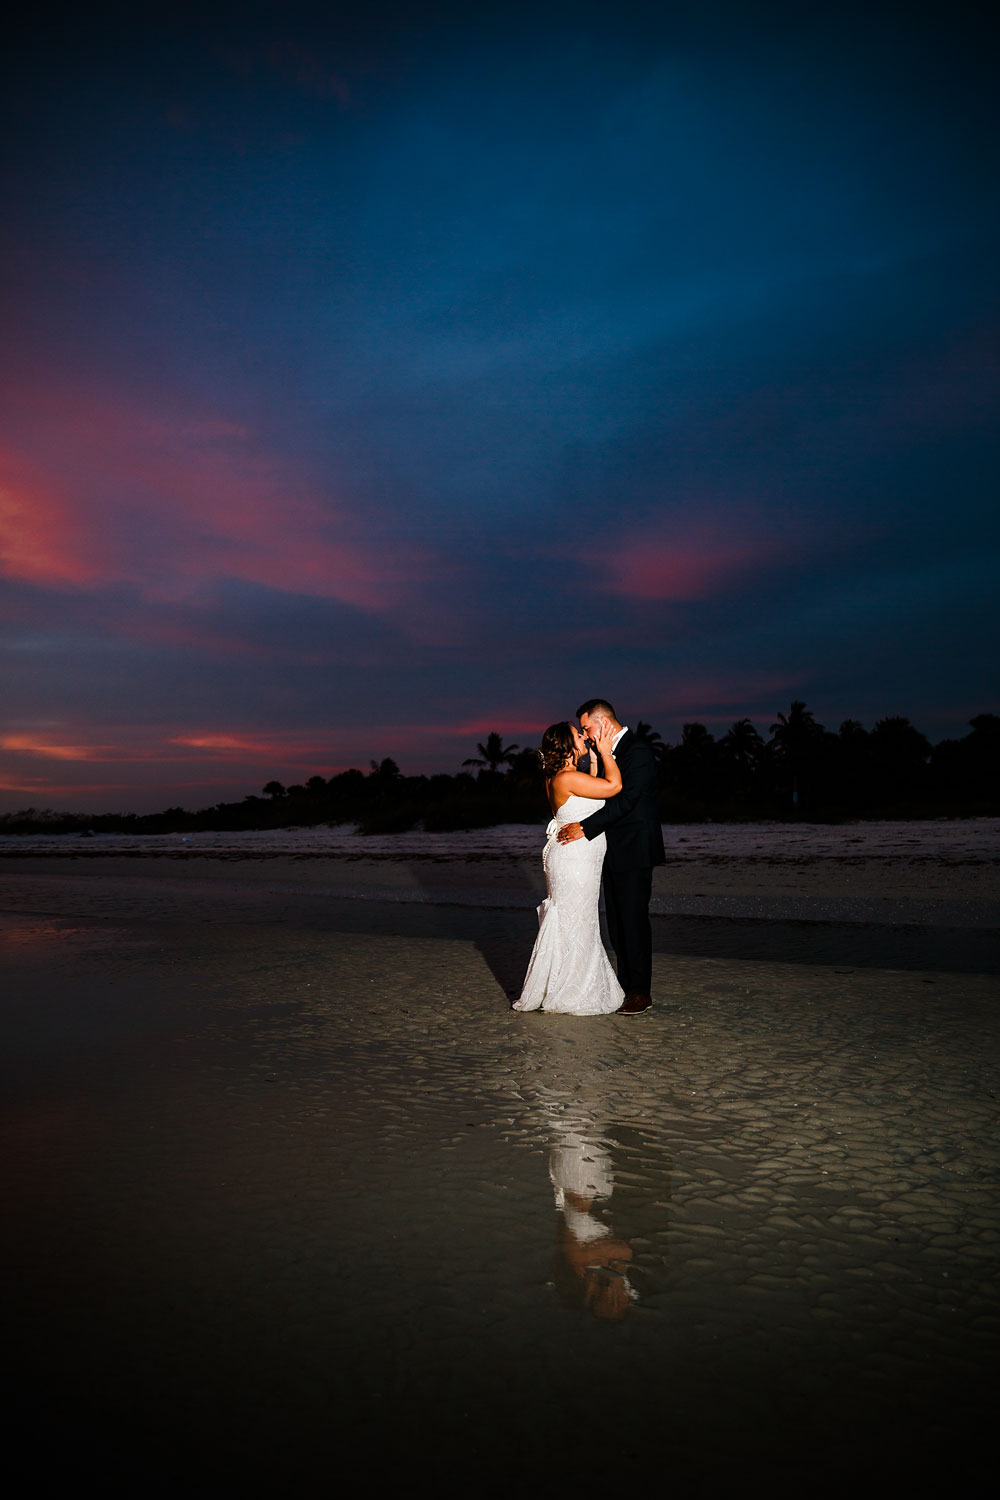 bride and groom kissing during sunset on beach